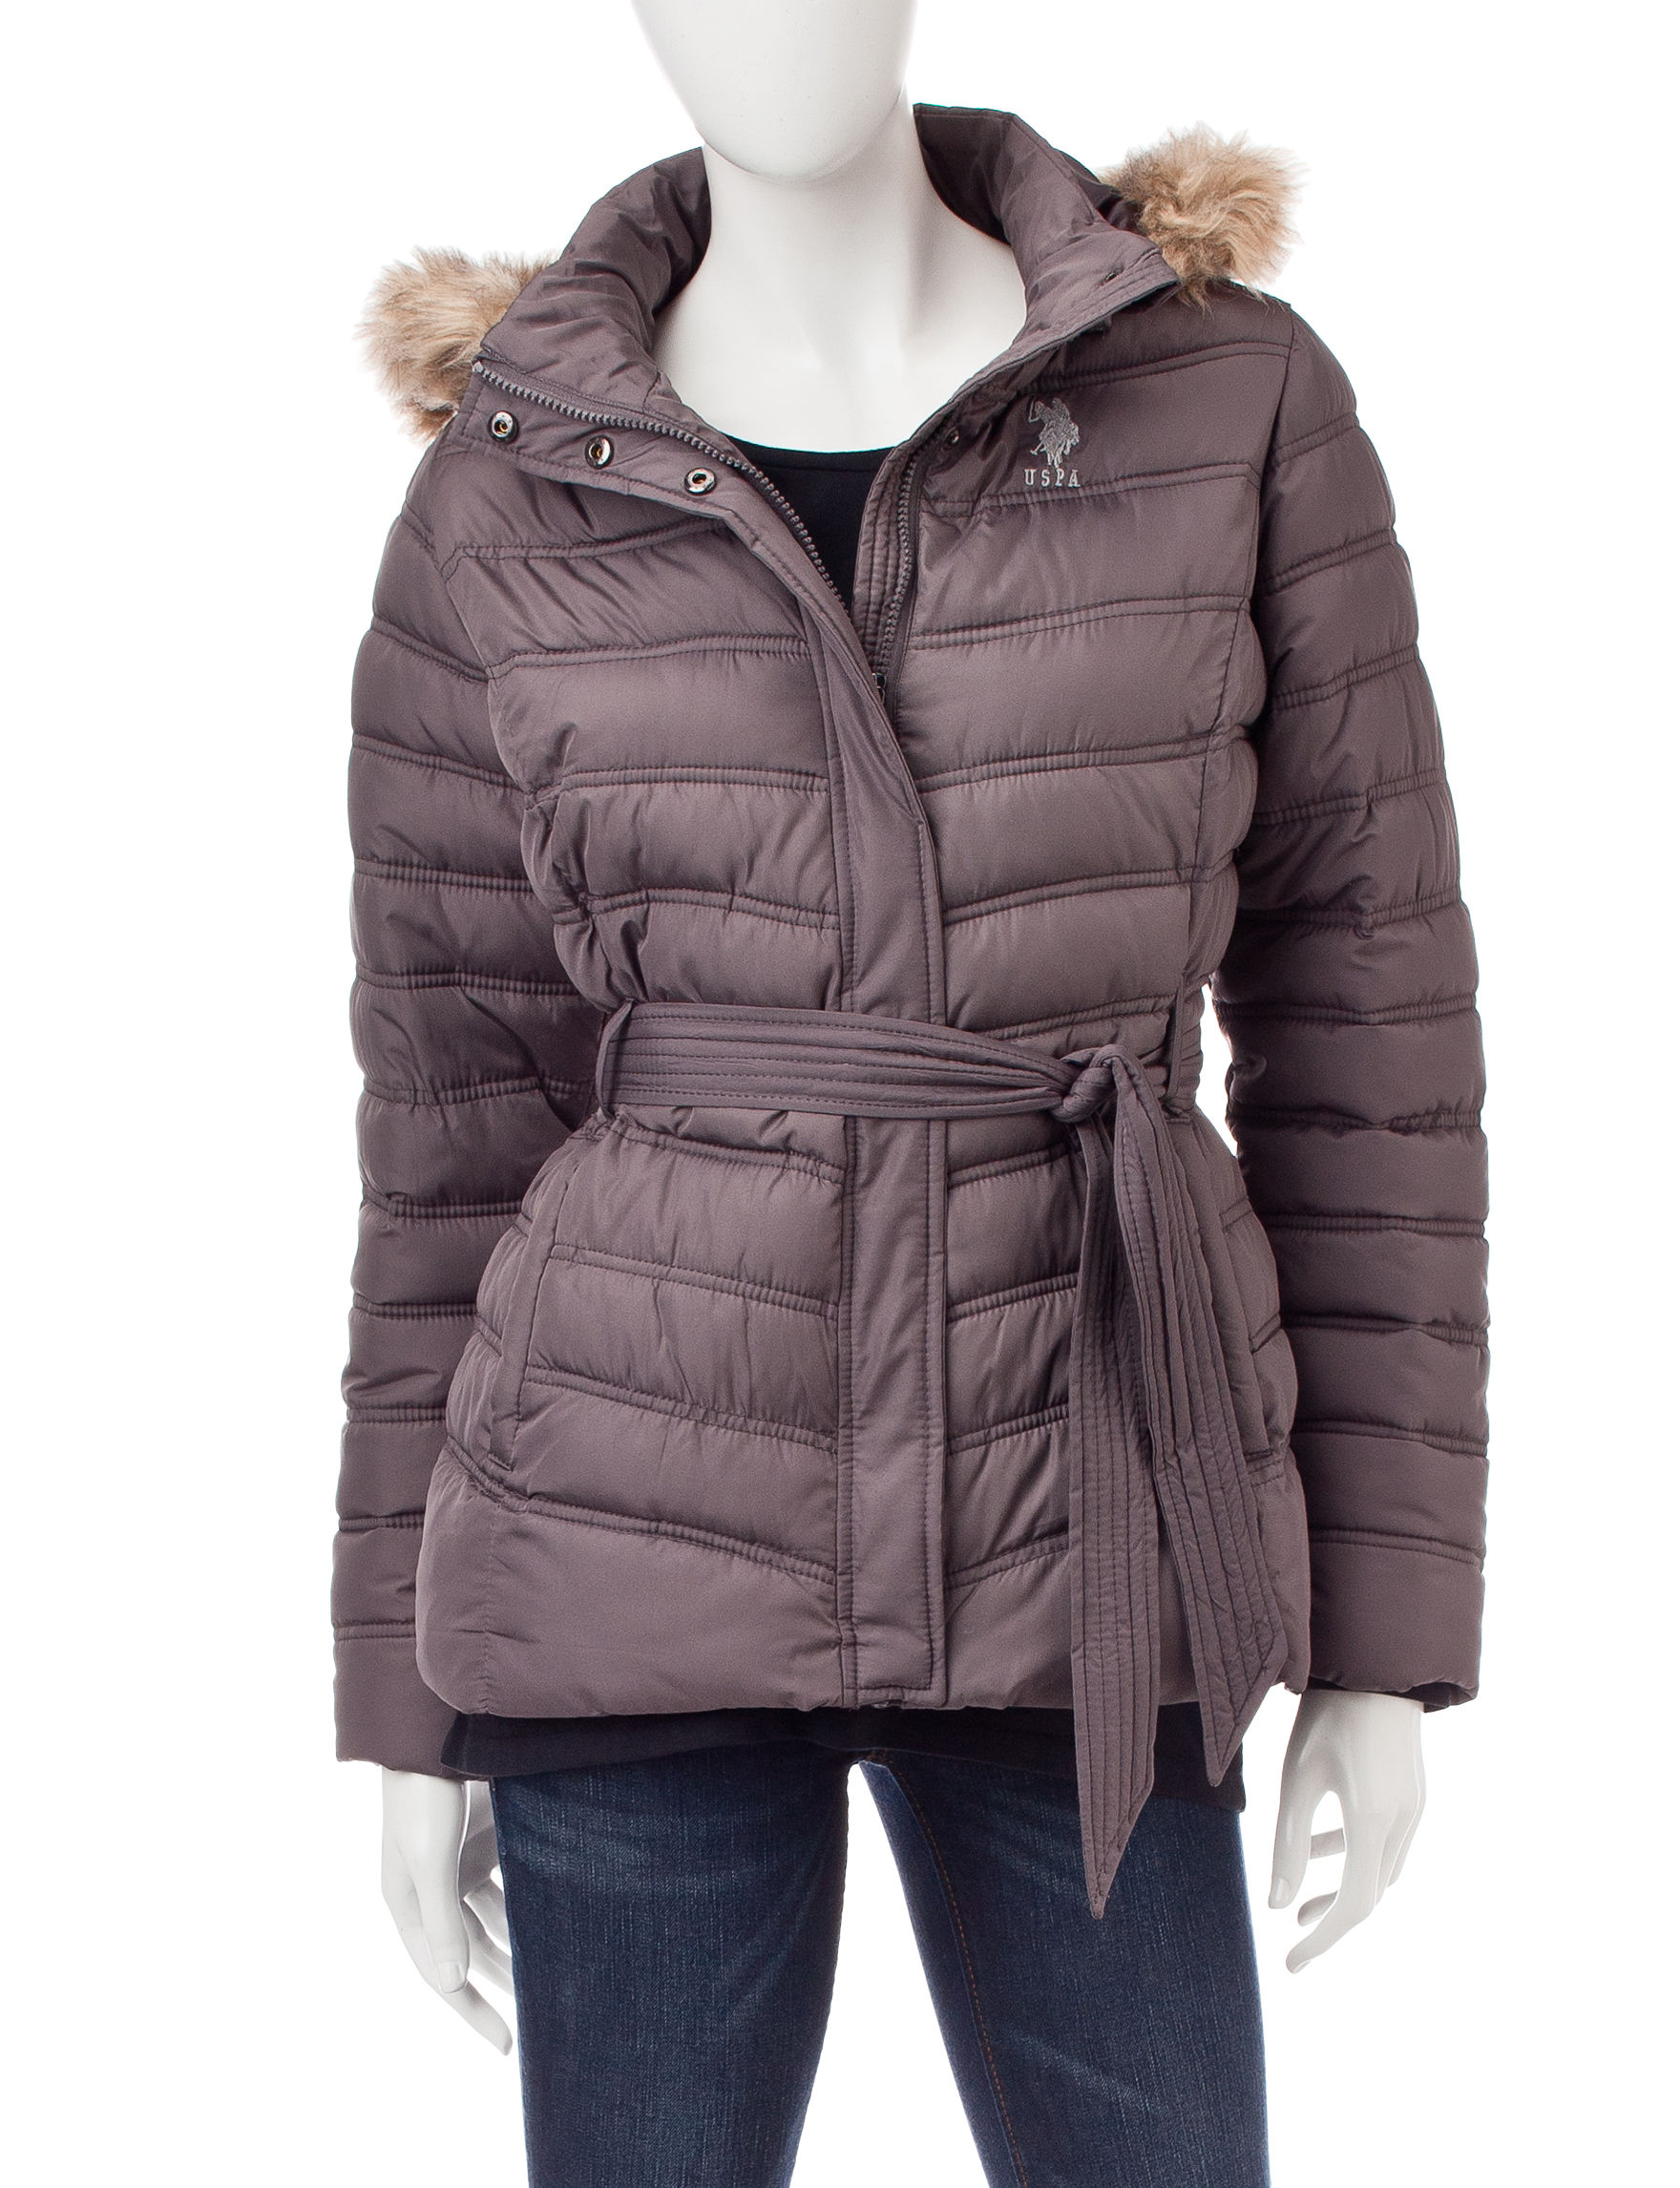 U.S. Polo Assn. Gray Puffer & Quilted Jackets